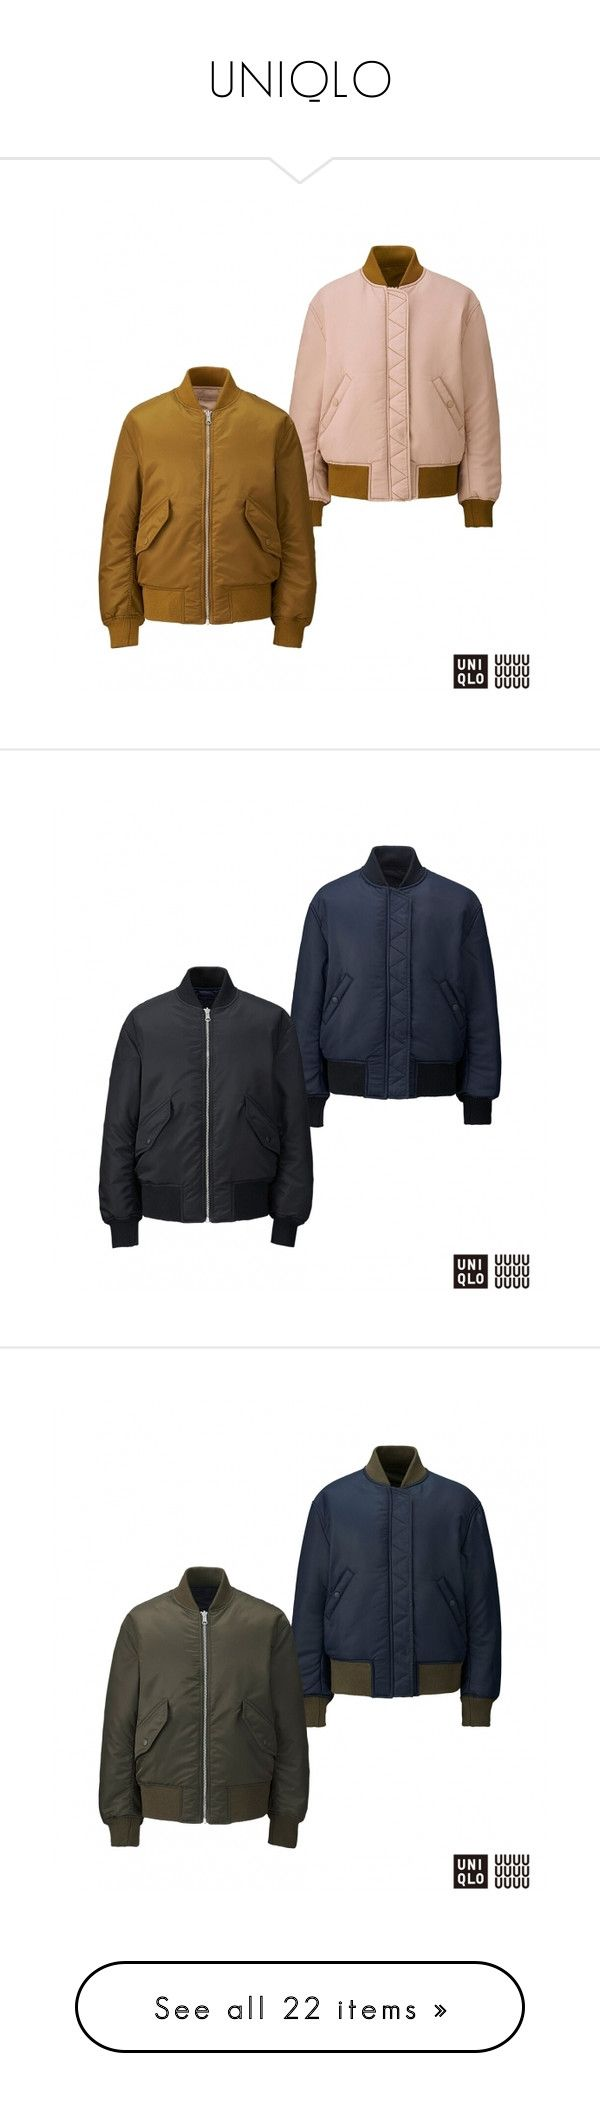 """UNIQLO"" by jckyleeah ❤ liked on Polyvore featuring uniqlo, tops, men's fashion, men's clothing, men's outerwear, men's jackets, mens lightweight down jacket, mens light weight jackets, uniqlo mens jackets and mens lightweight jacket"